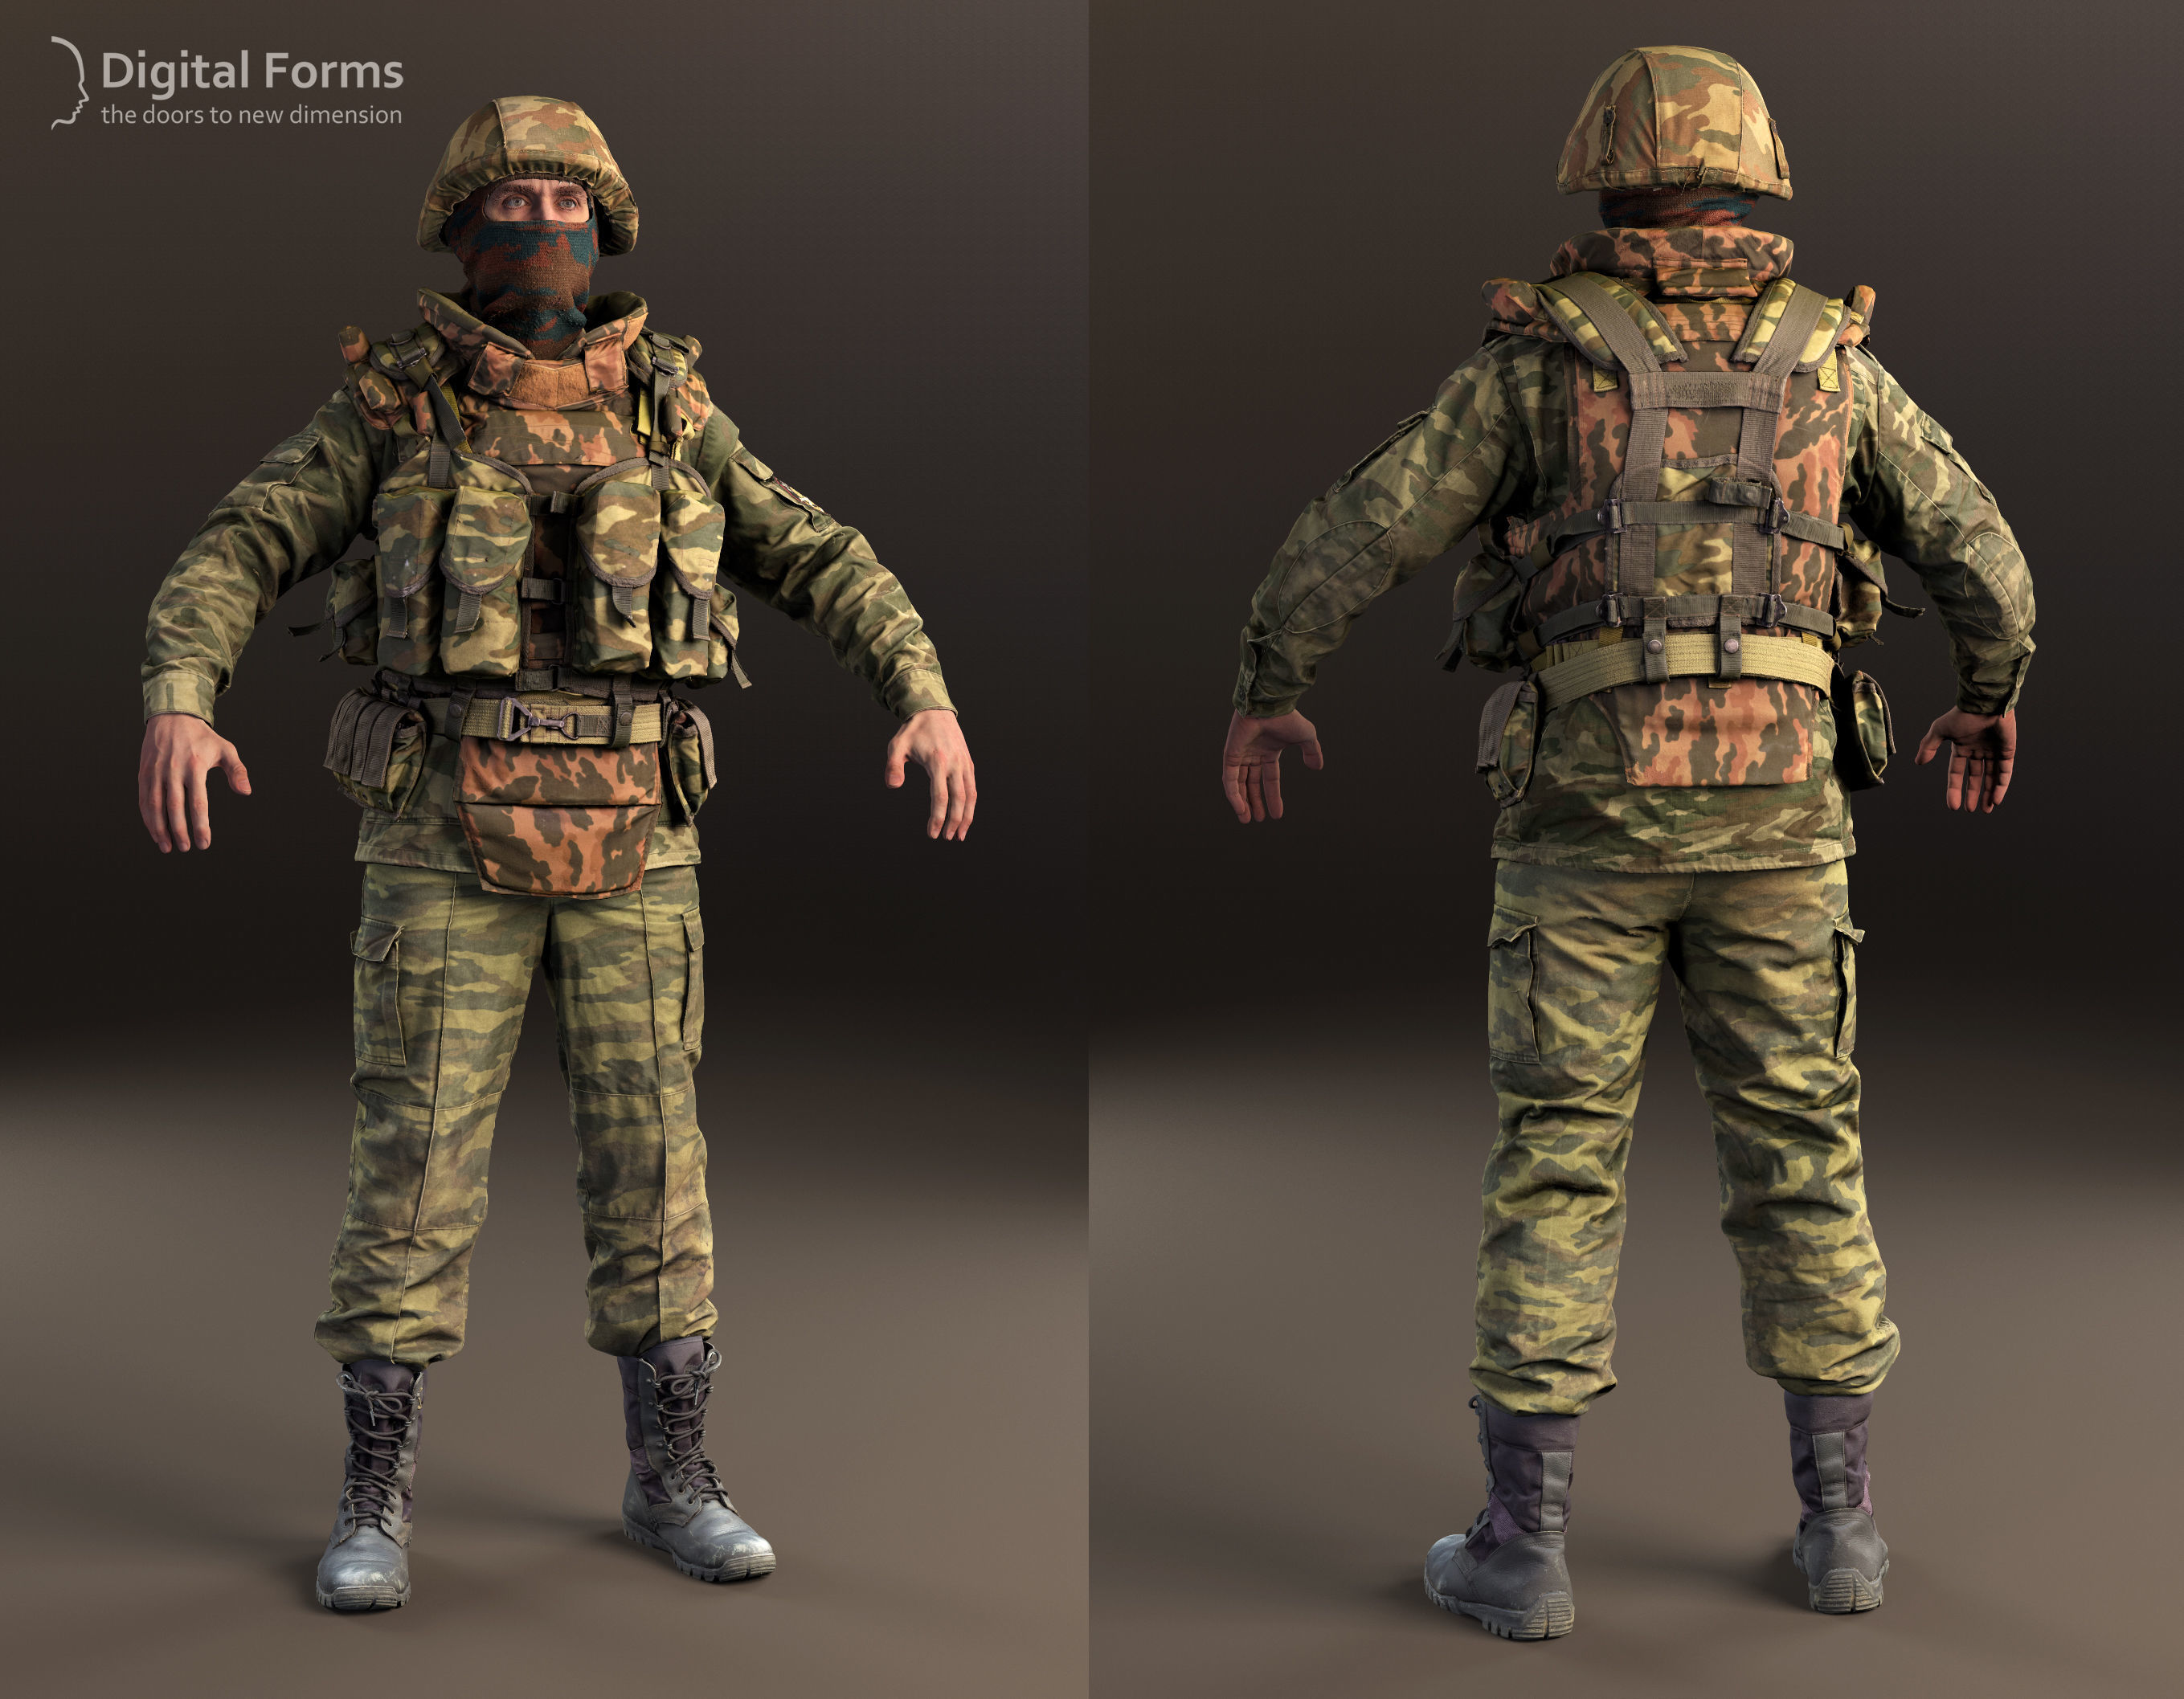 Russian uniform and equipment of the early 2000s